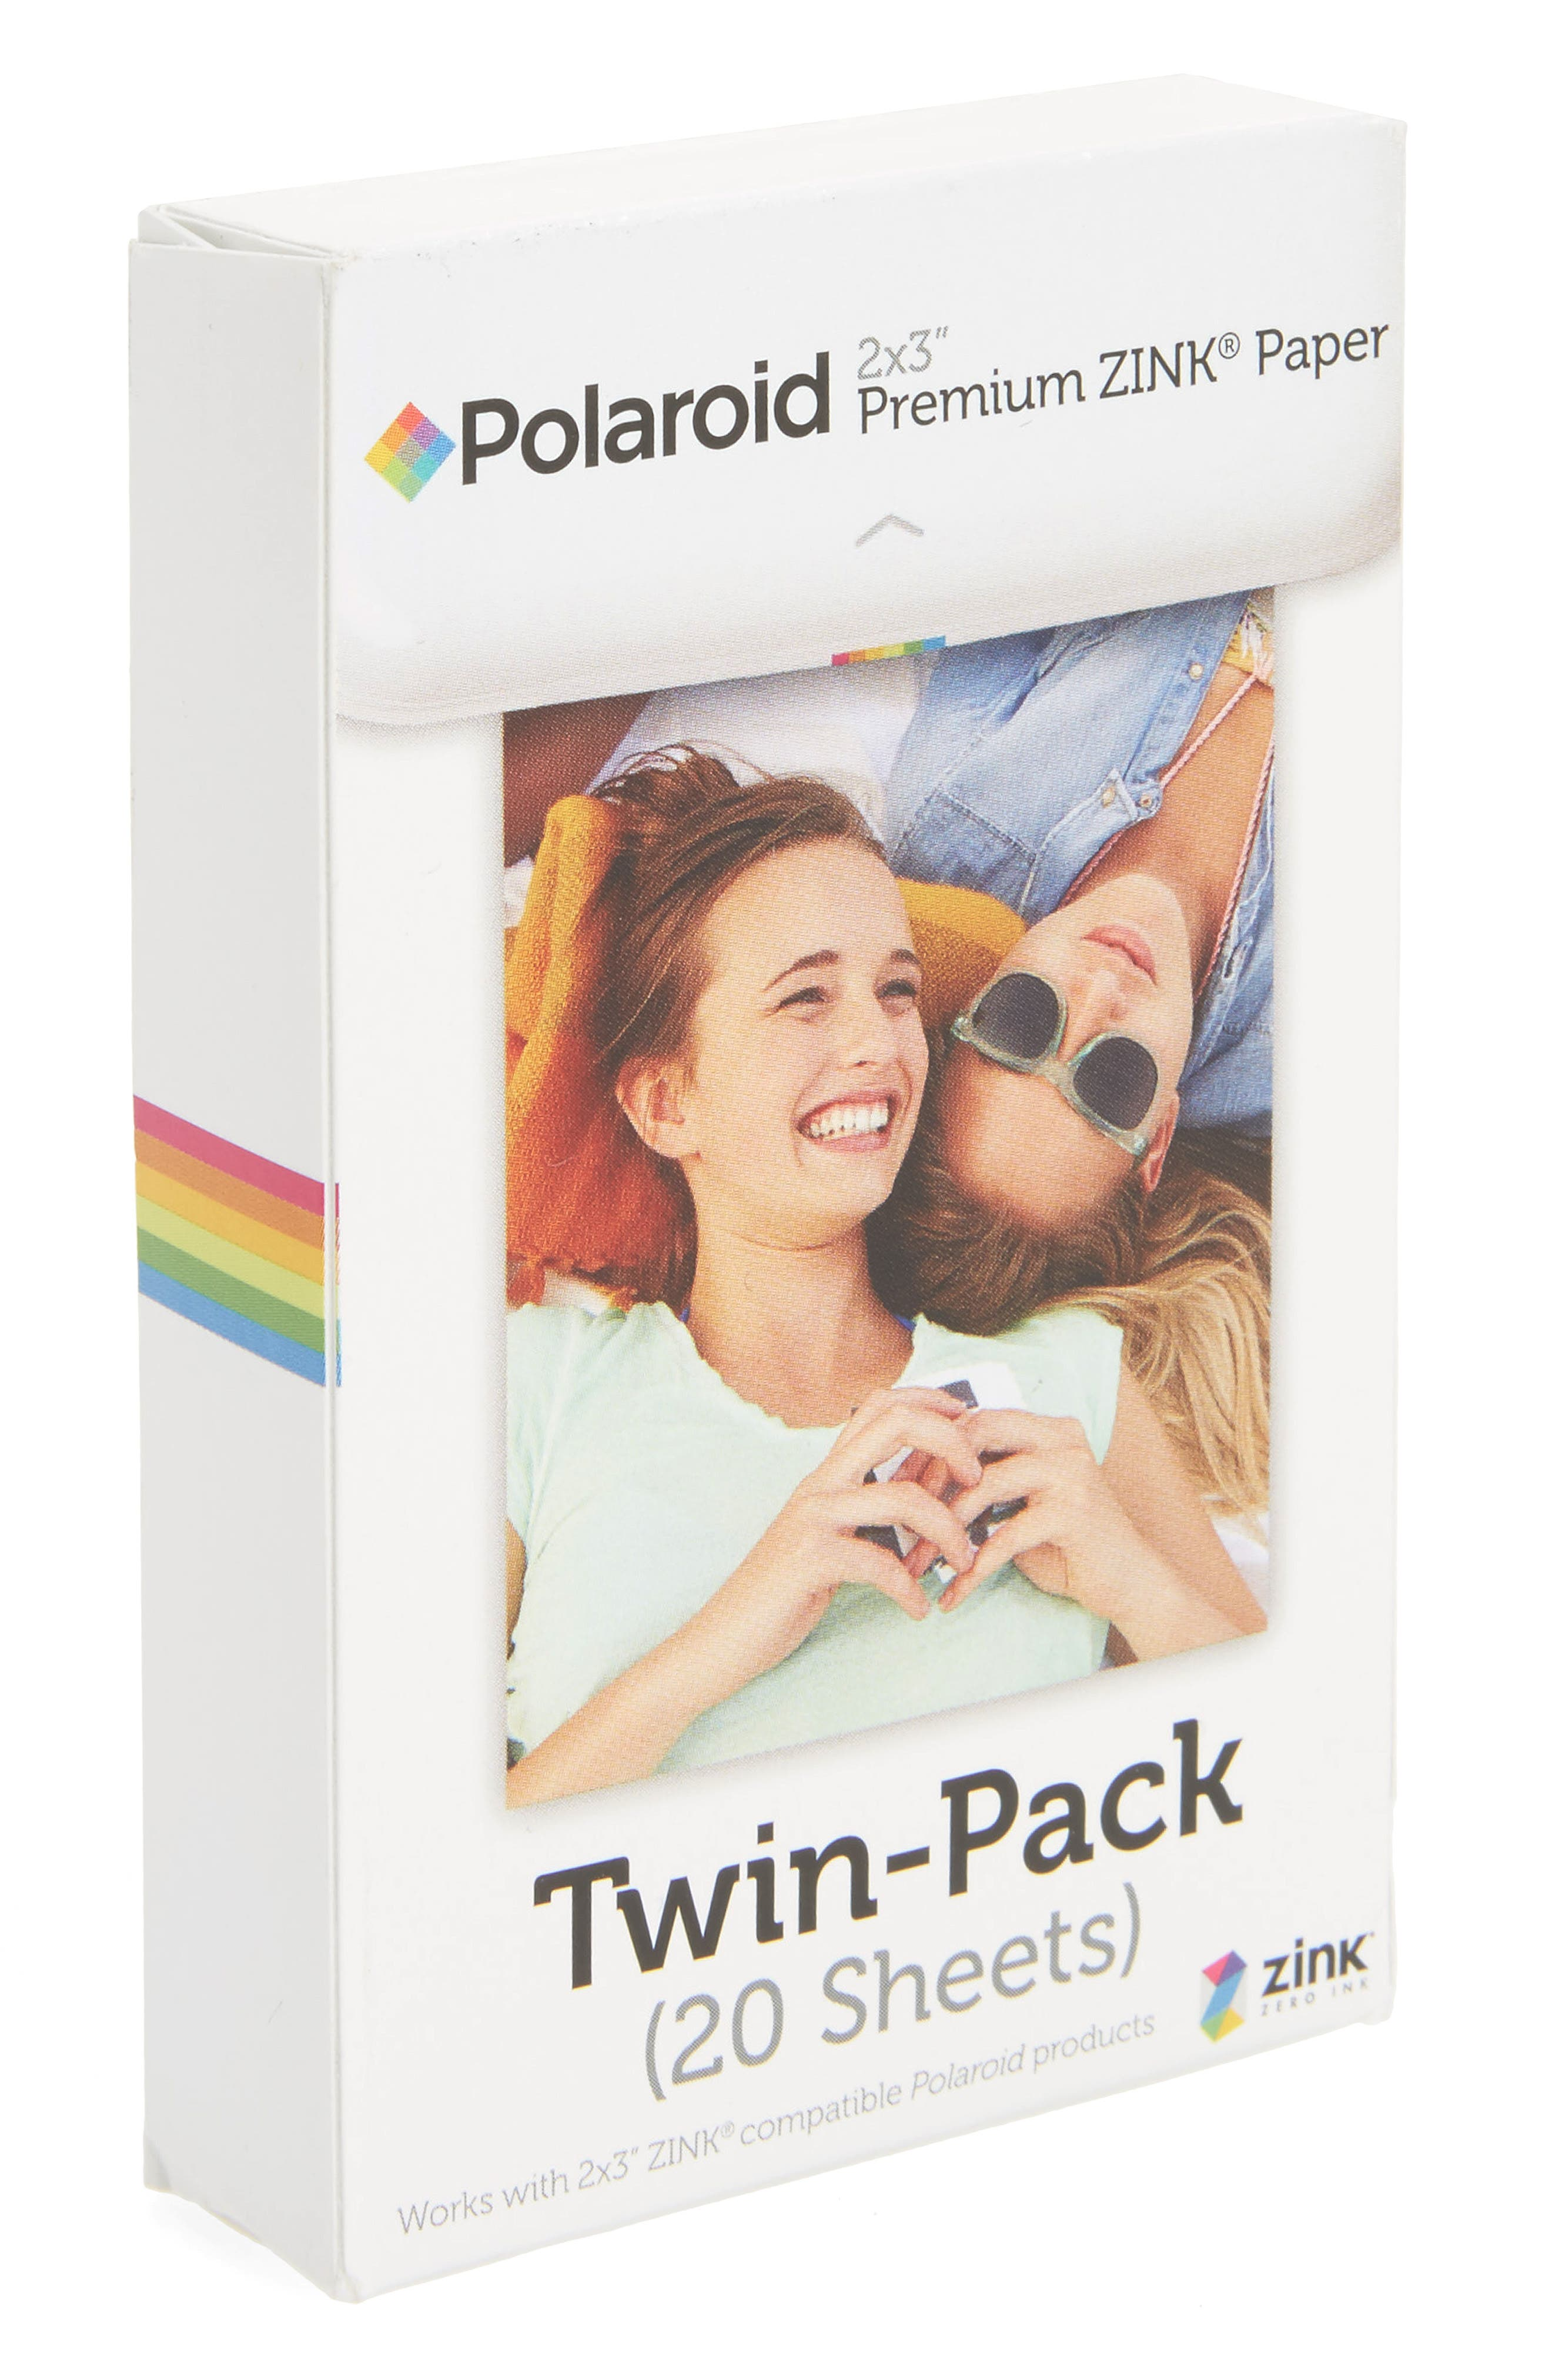 POLAROID ZINK<sup>®</sup> Paper Z2300 Film